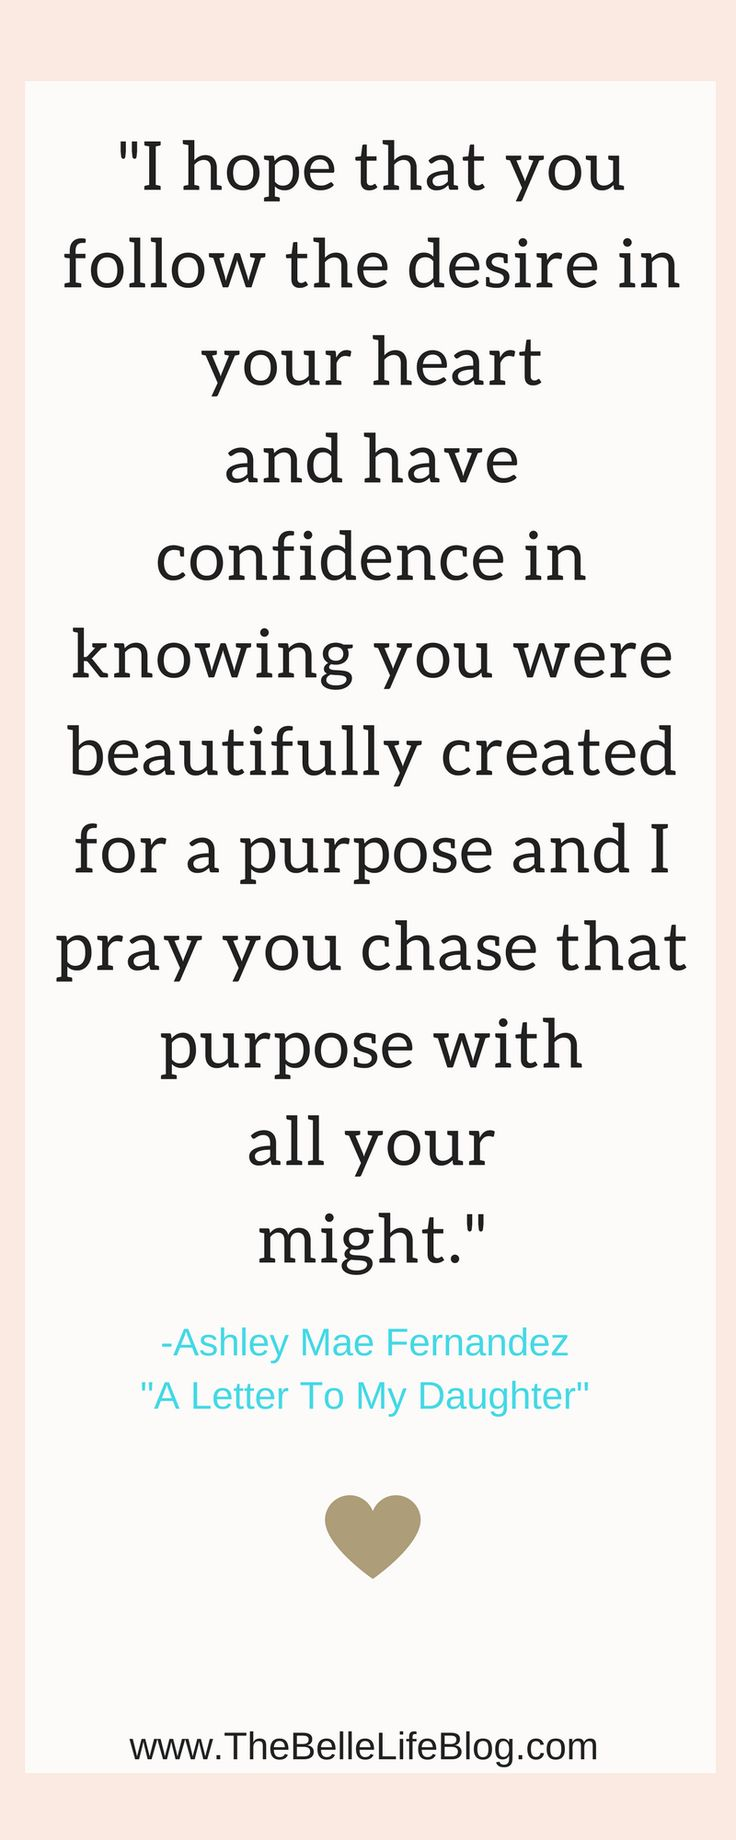 I hope that you follow the desire in your heart and have confidence in knowing you were beautifully created for a purpose and I pray you chase that purpose with all your might. Inspirational quote. Letter to my daughter. Motivational quote. Christian Quote